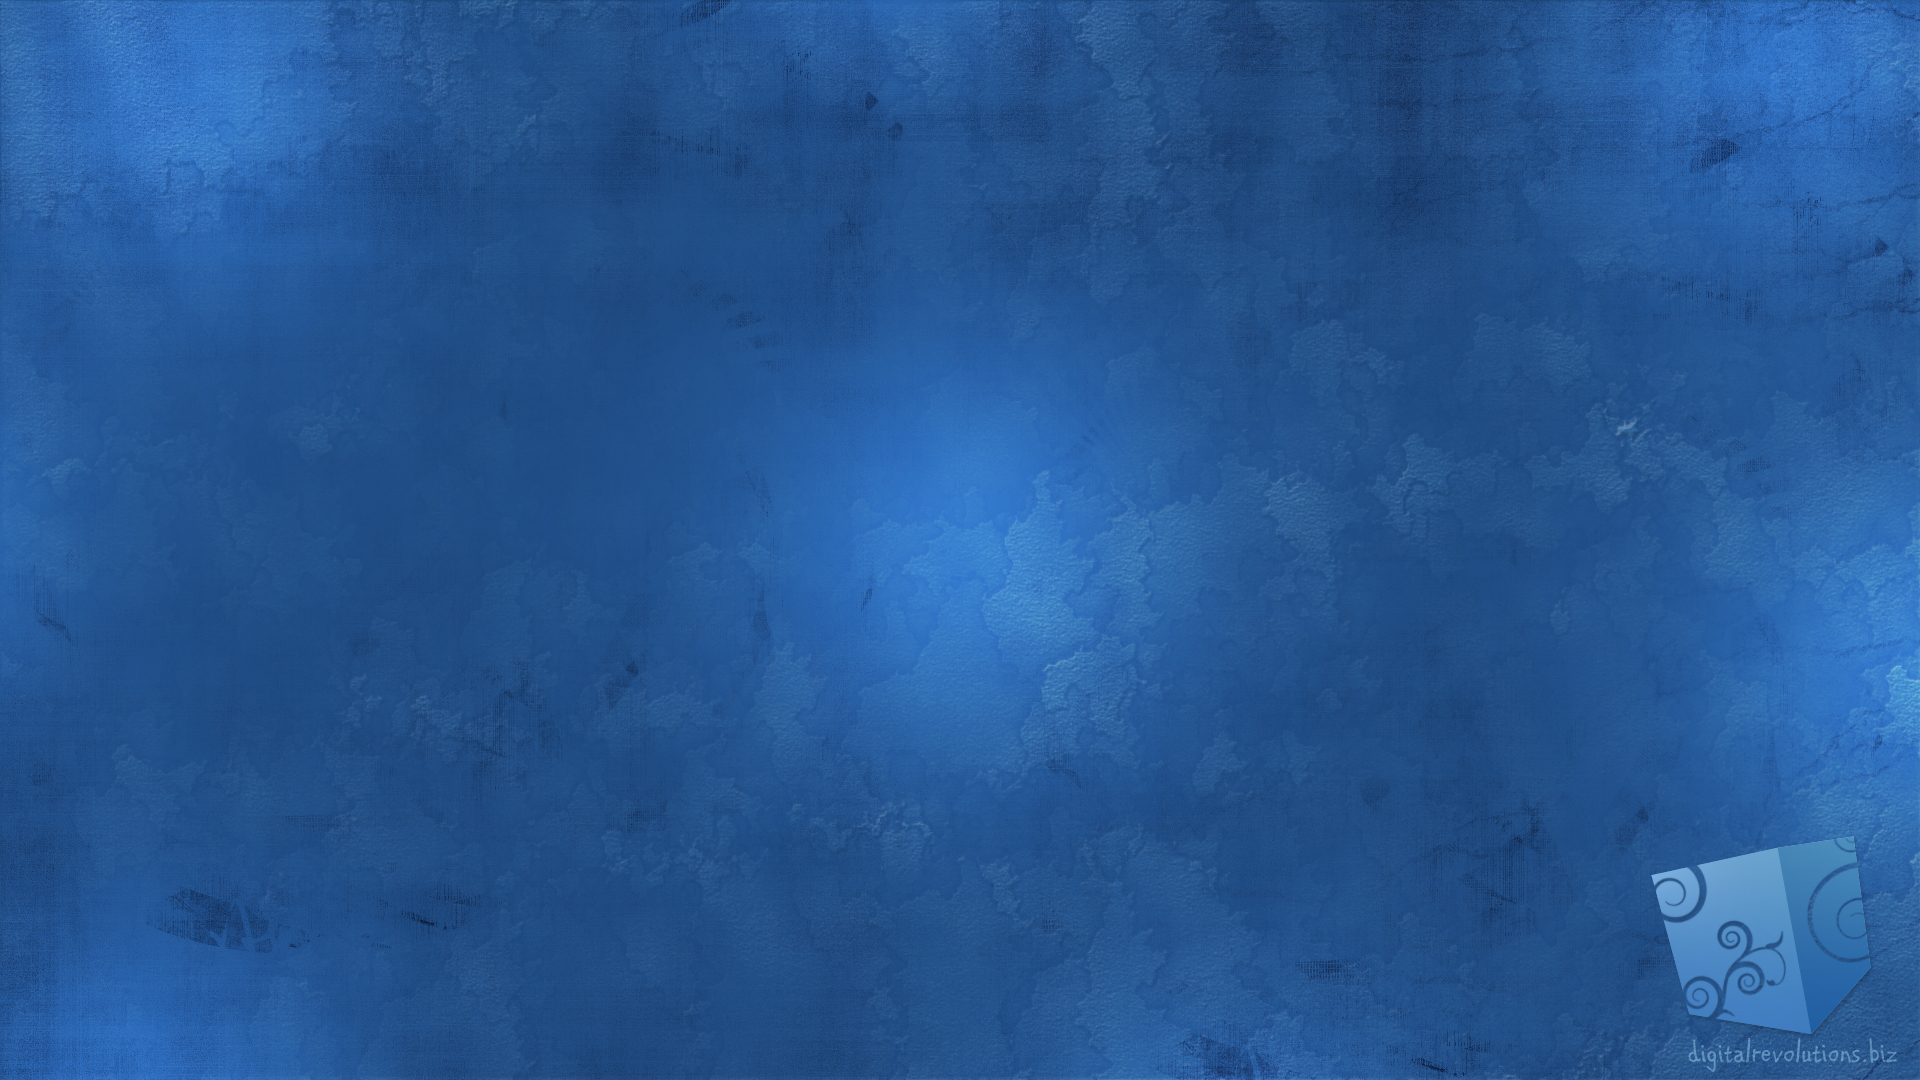 Blue Prev Cool Free Abstract Background Wallpaper Revolutions Hd Download Digital